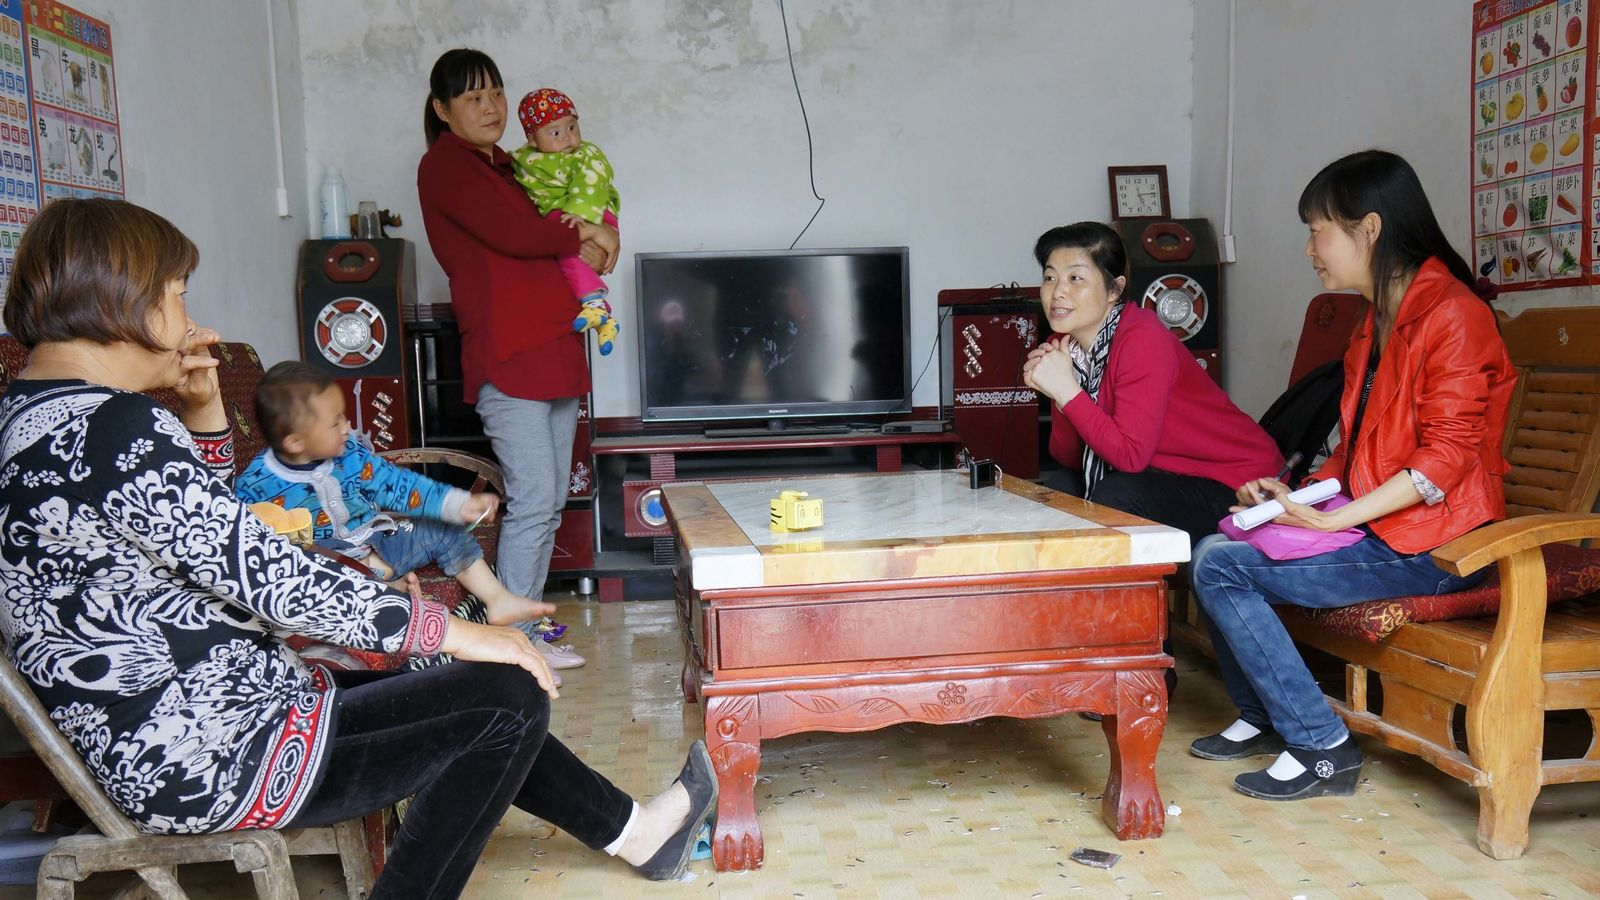 5 - Zhoudan trains Family Mentor to do home visits